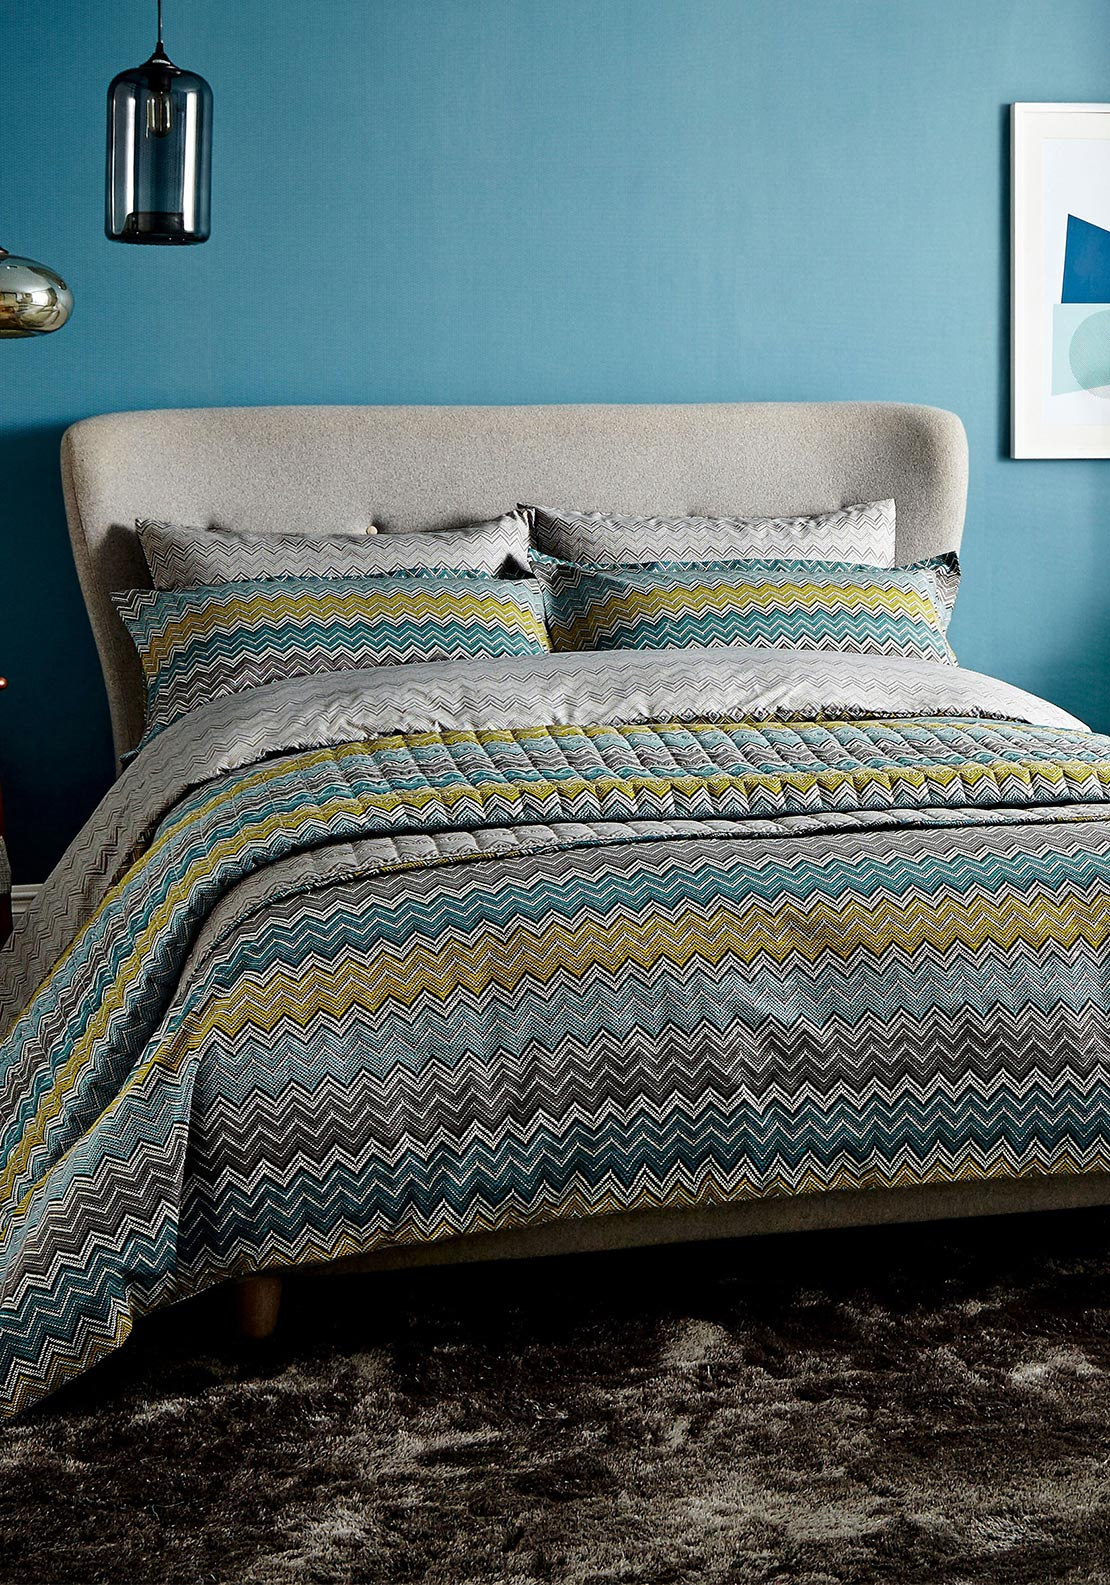 Harlequin Chevron Zig Zag Quilted Throw 265cm x 260cm, Blue